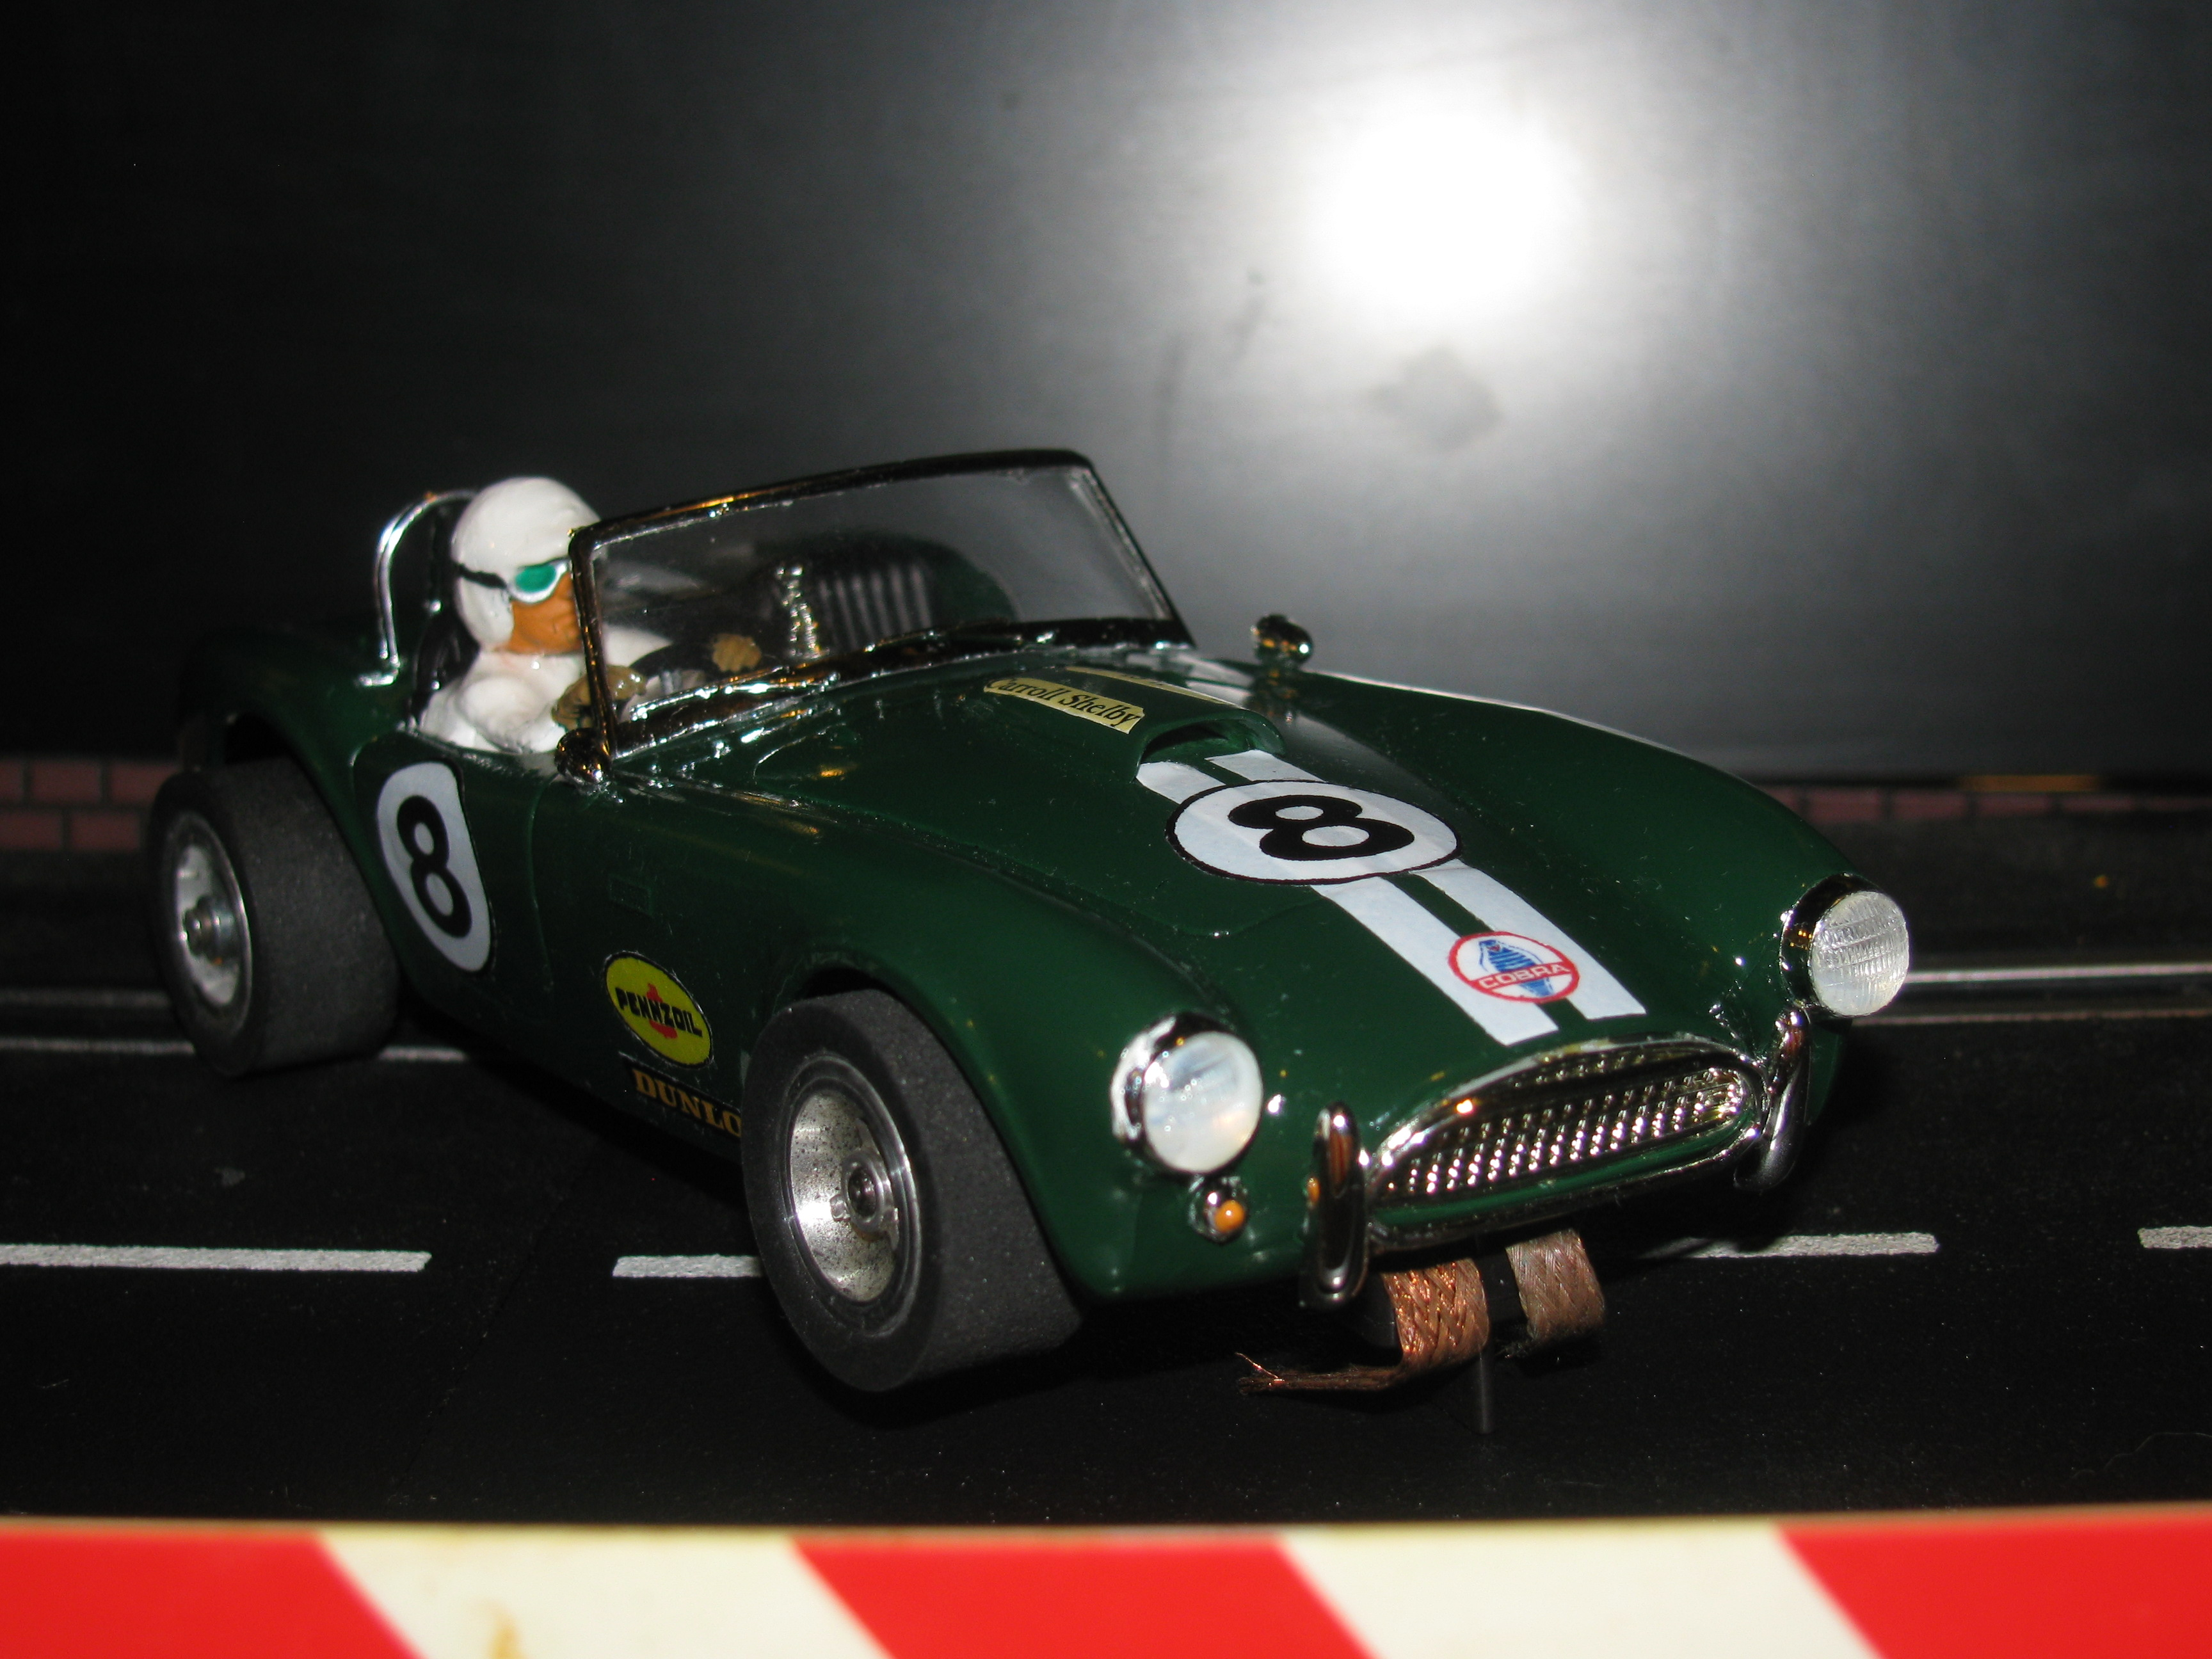 *SOLD* Vintage Shelby Cobra Roadster Racing Special Slot Car, Car 8 in 1/24 Scale